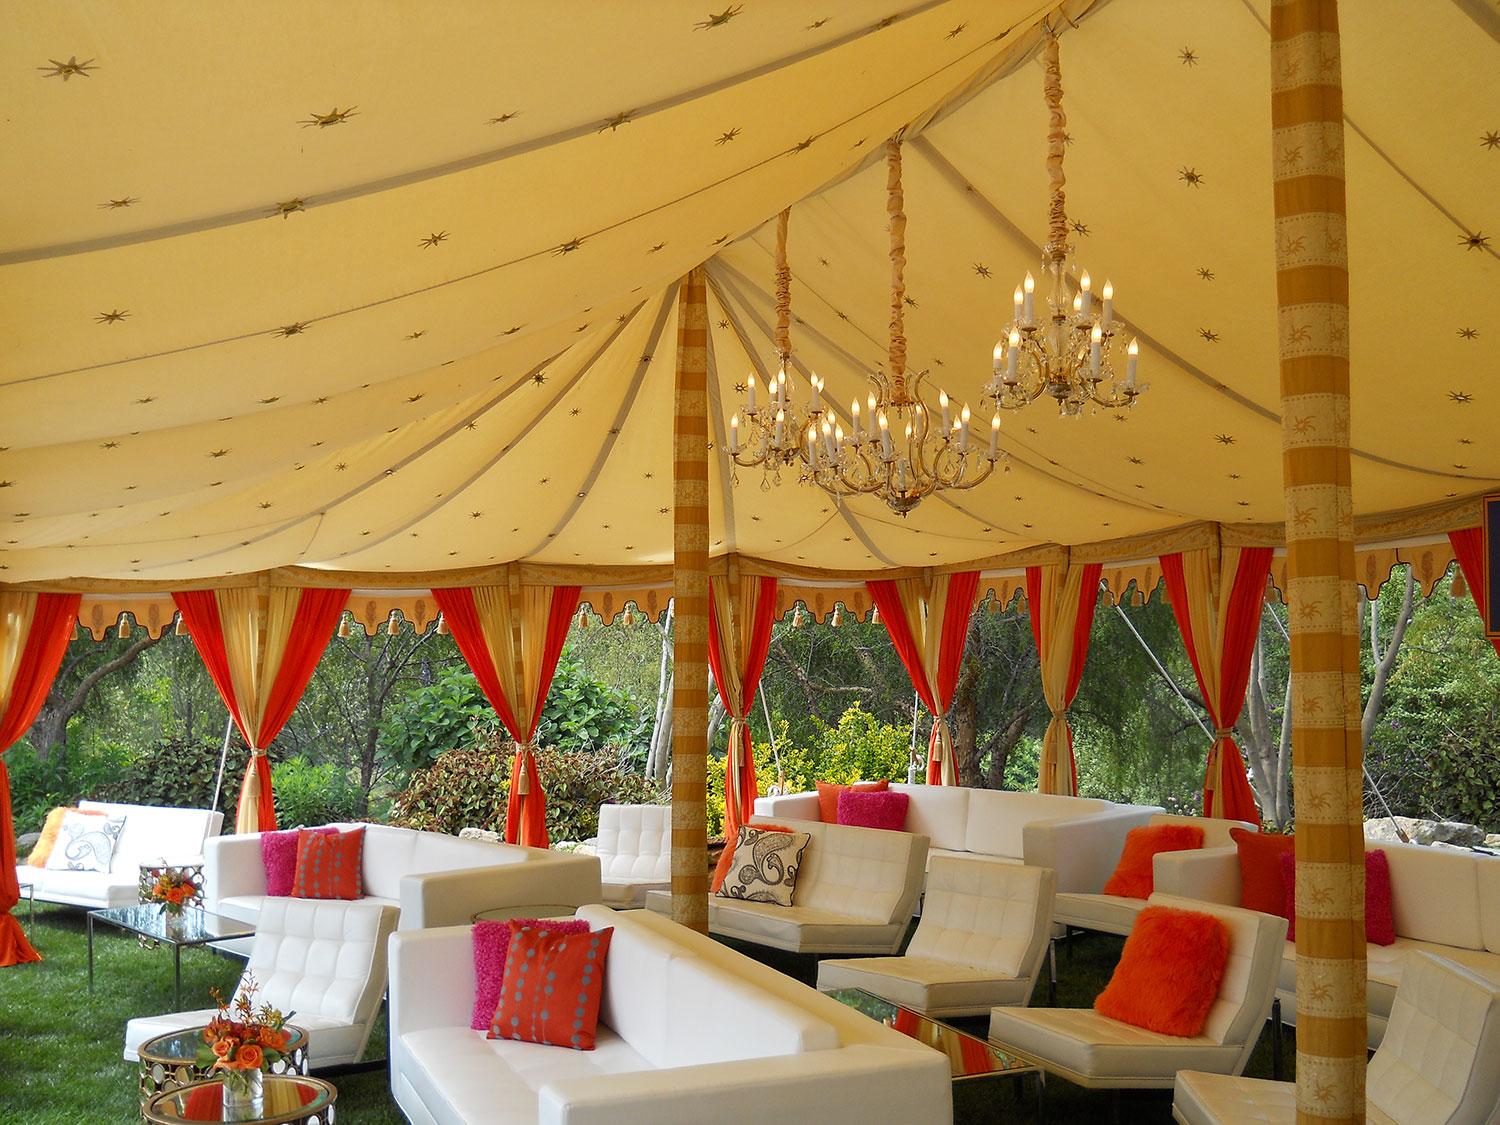 raj-tents-maharaja-honeyglow-spicy-orange-lounge.jpg